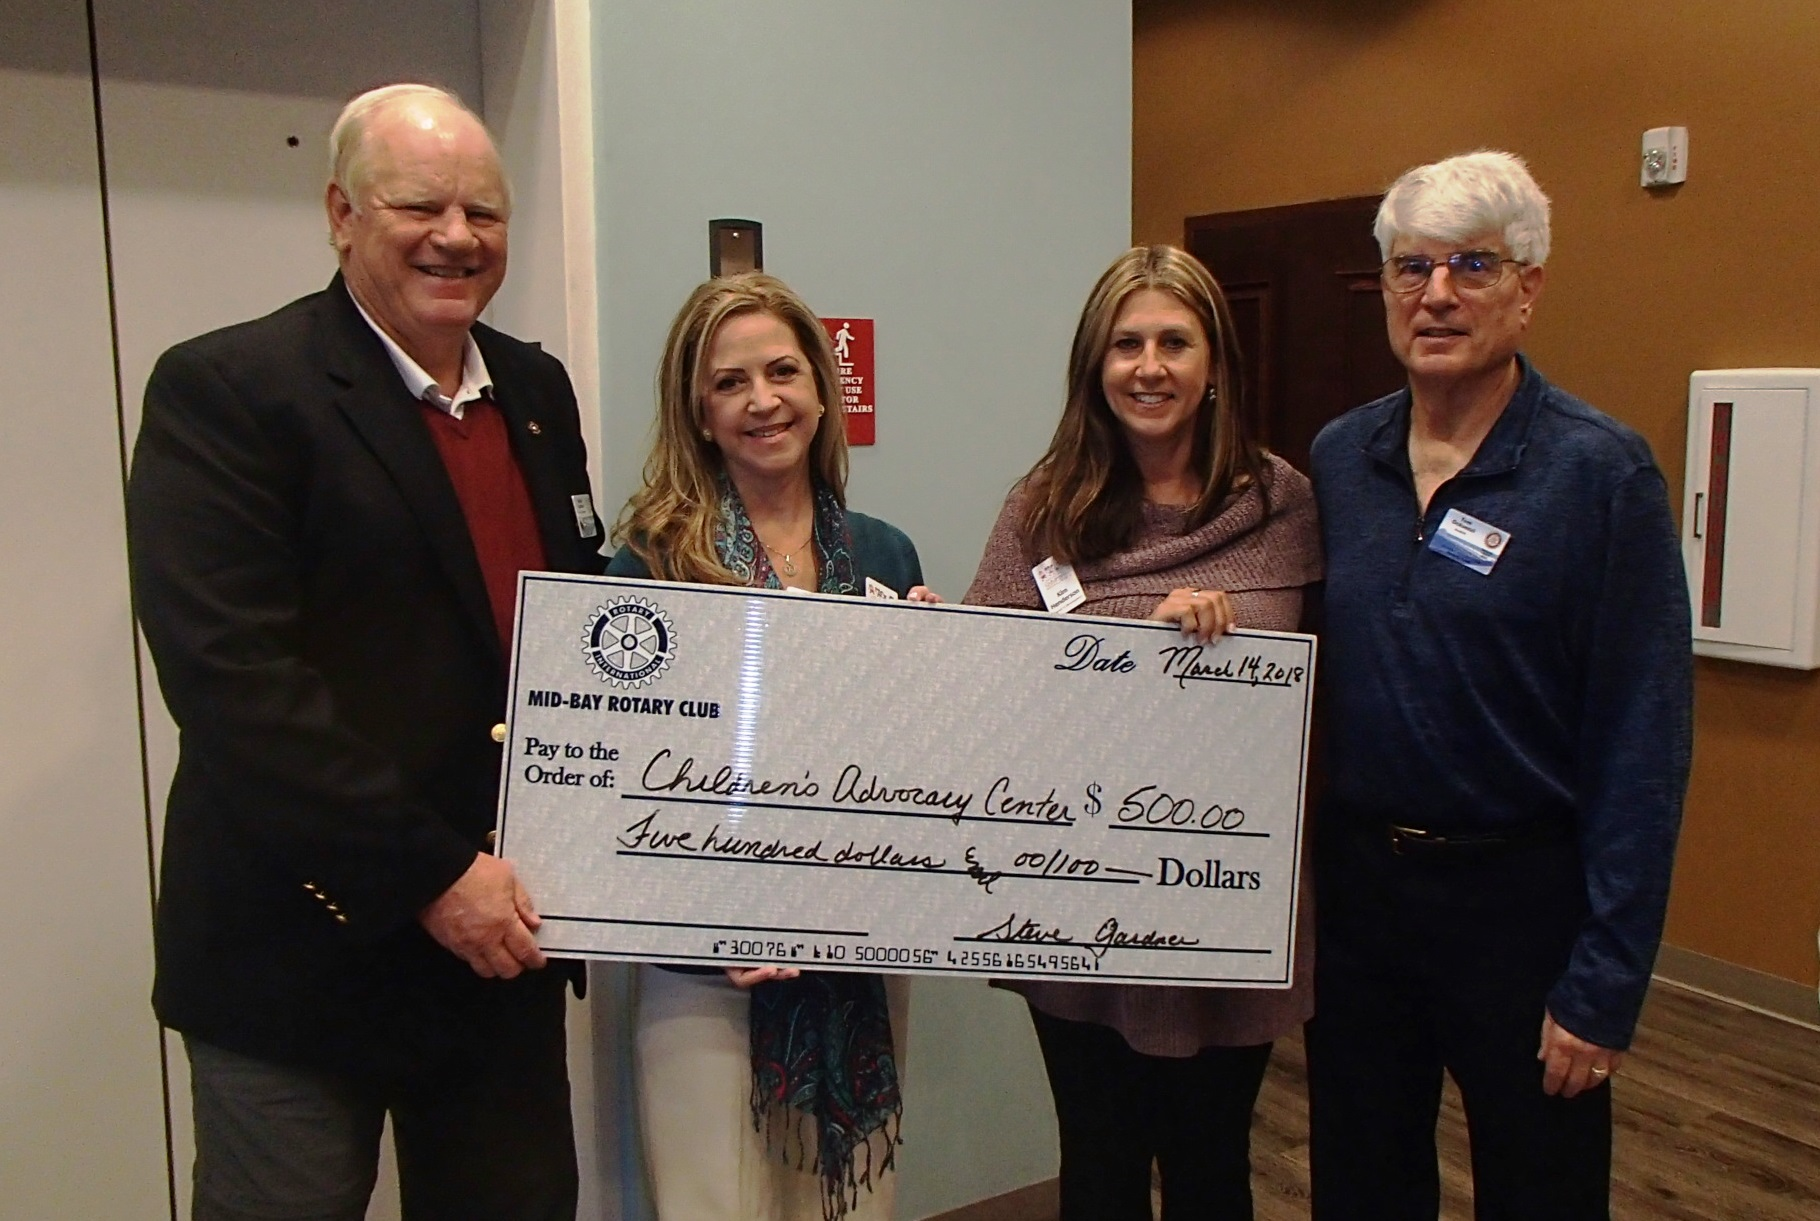 ECCAC receives $500 donation from the Mid Bay Rotary Club. Pictured L-R are  Steve Gardner, Katrina Puri, Kim Henderson and Tom Ockunzzi.